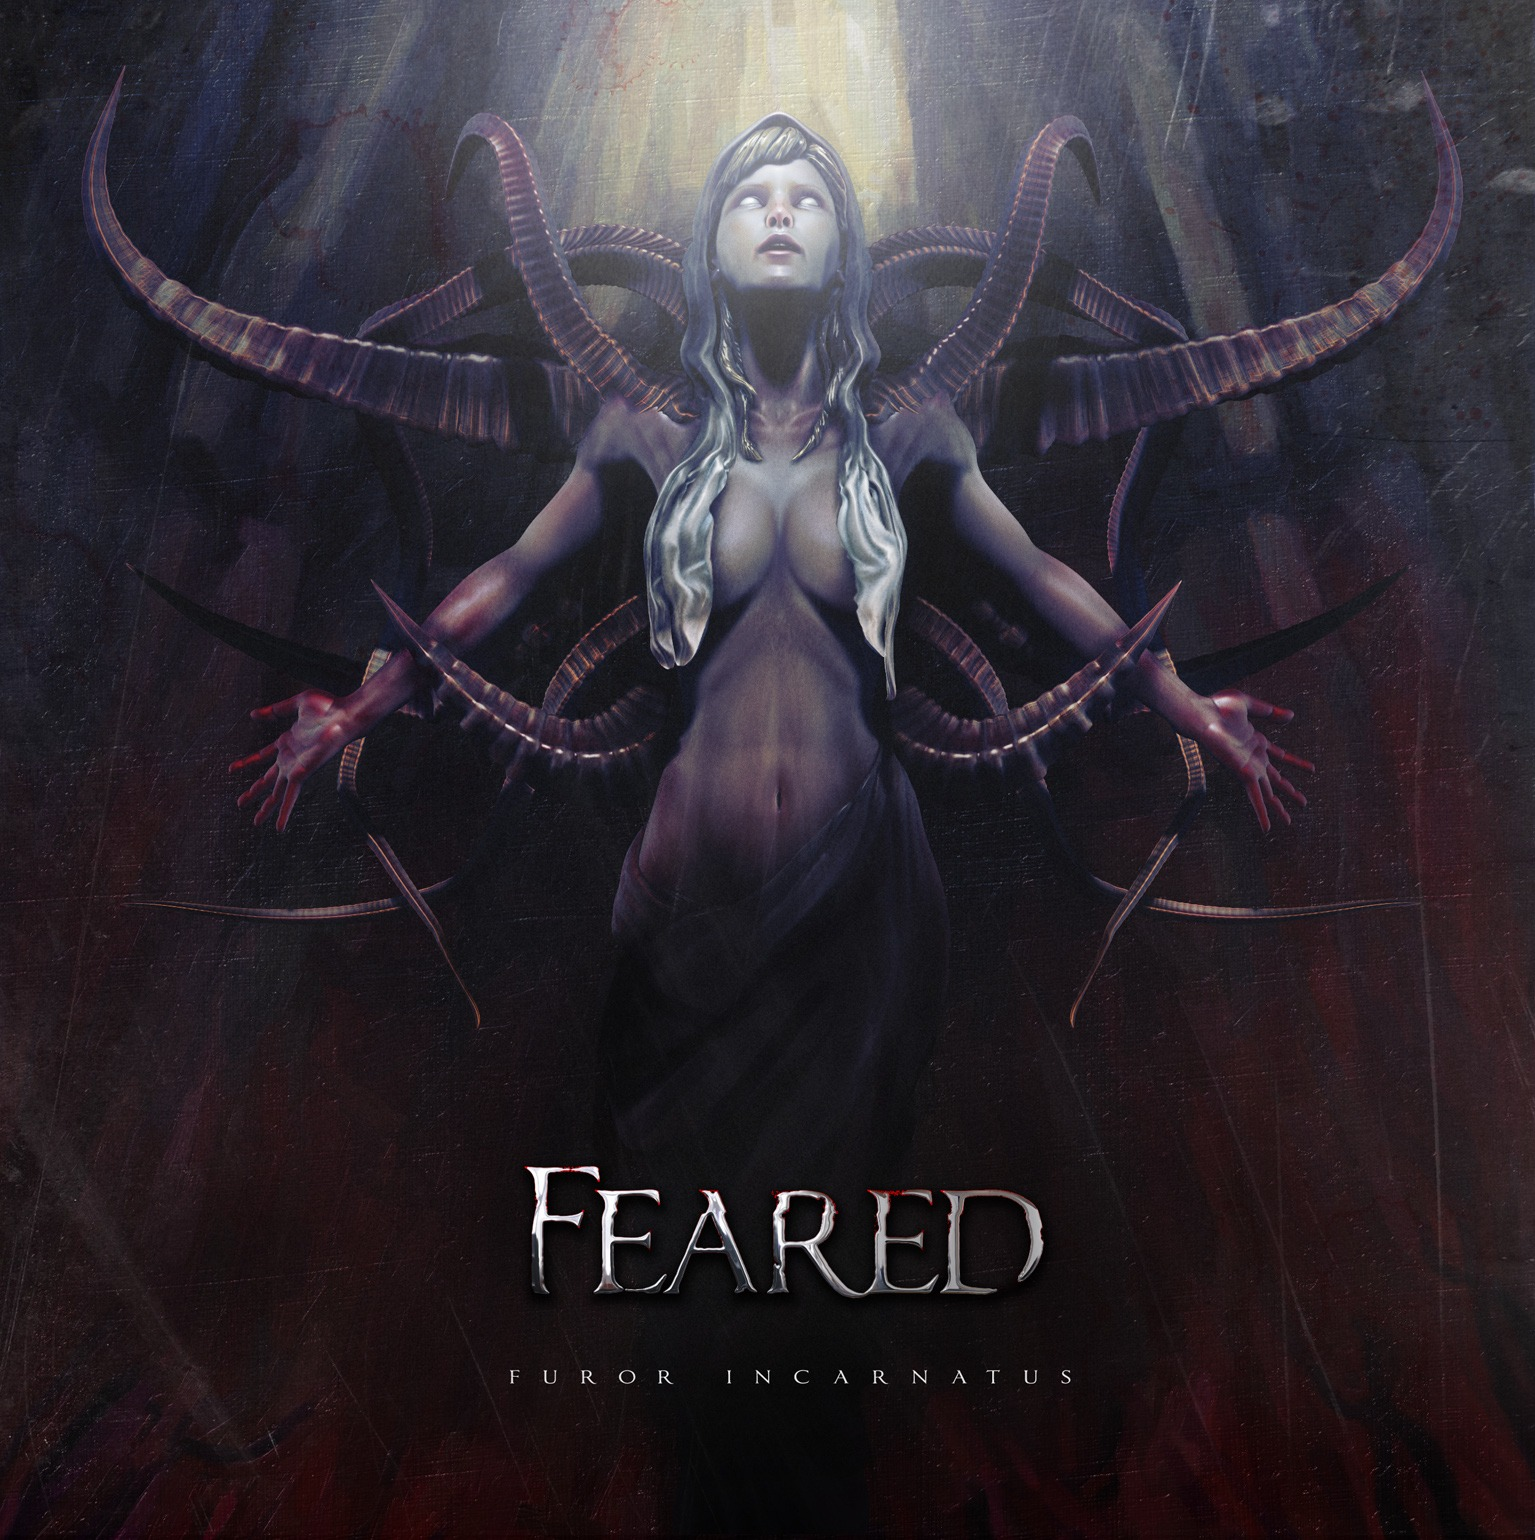 FEARED (Sue) – Furor Incarnatus, 2013